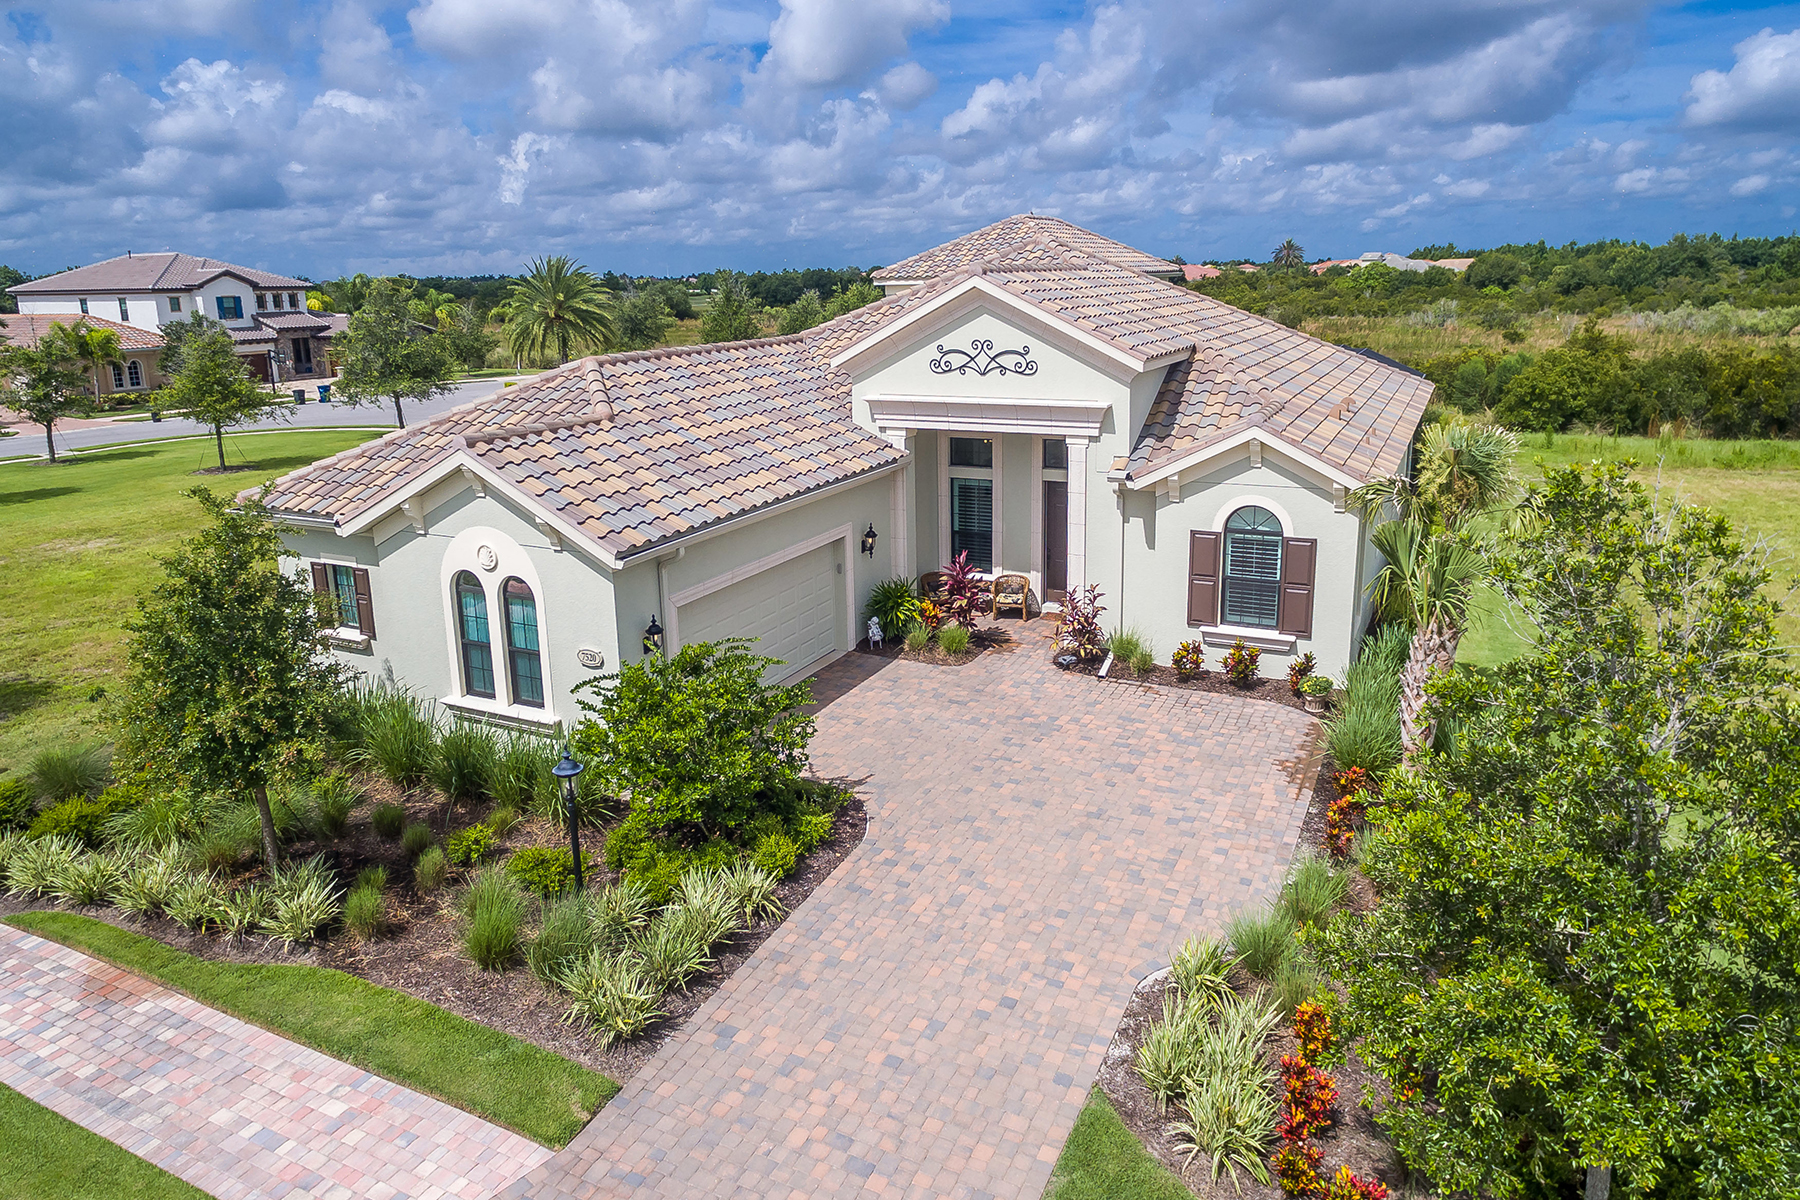 Single Family Home for Sale at COUNTRY CLUB EAST 7520 Windy Hill Cv Cv, Lakewood Ranch, Florida, 34202 United States